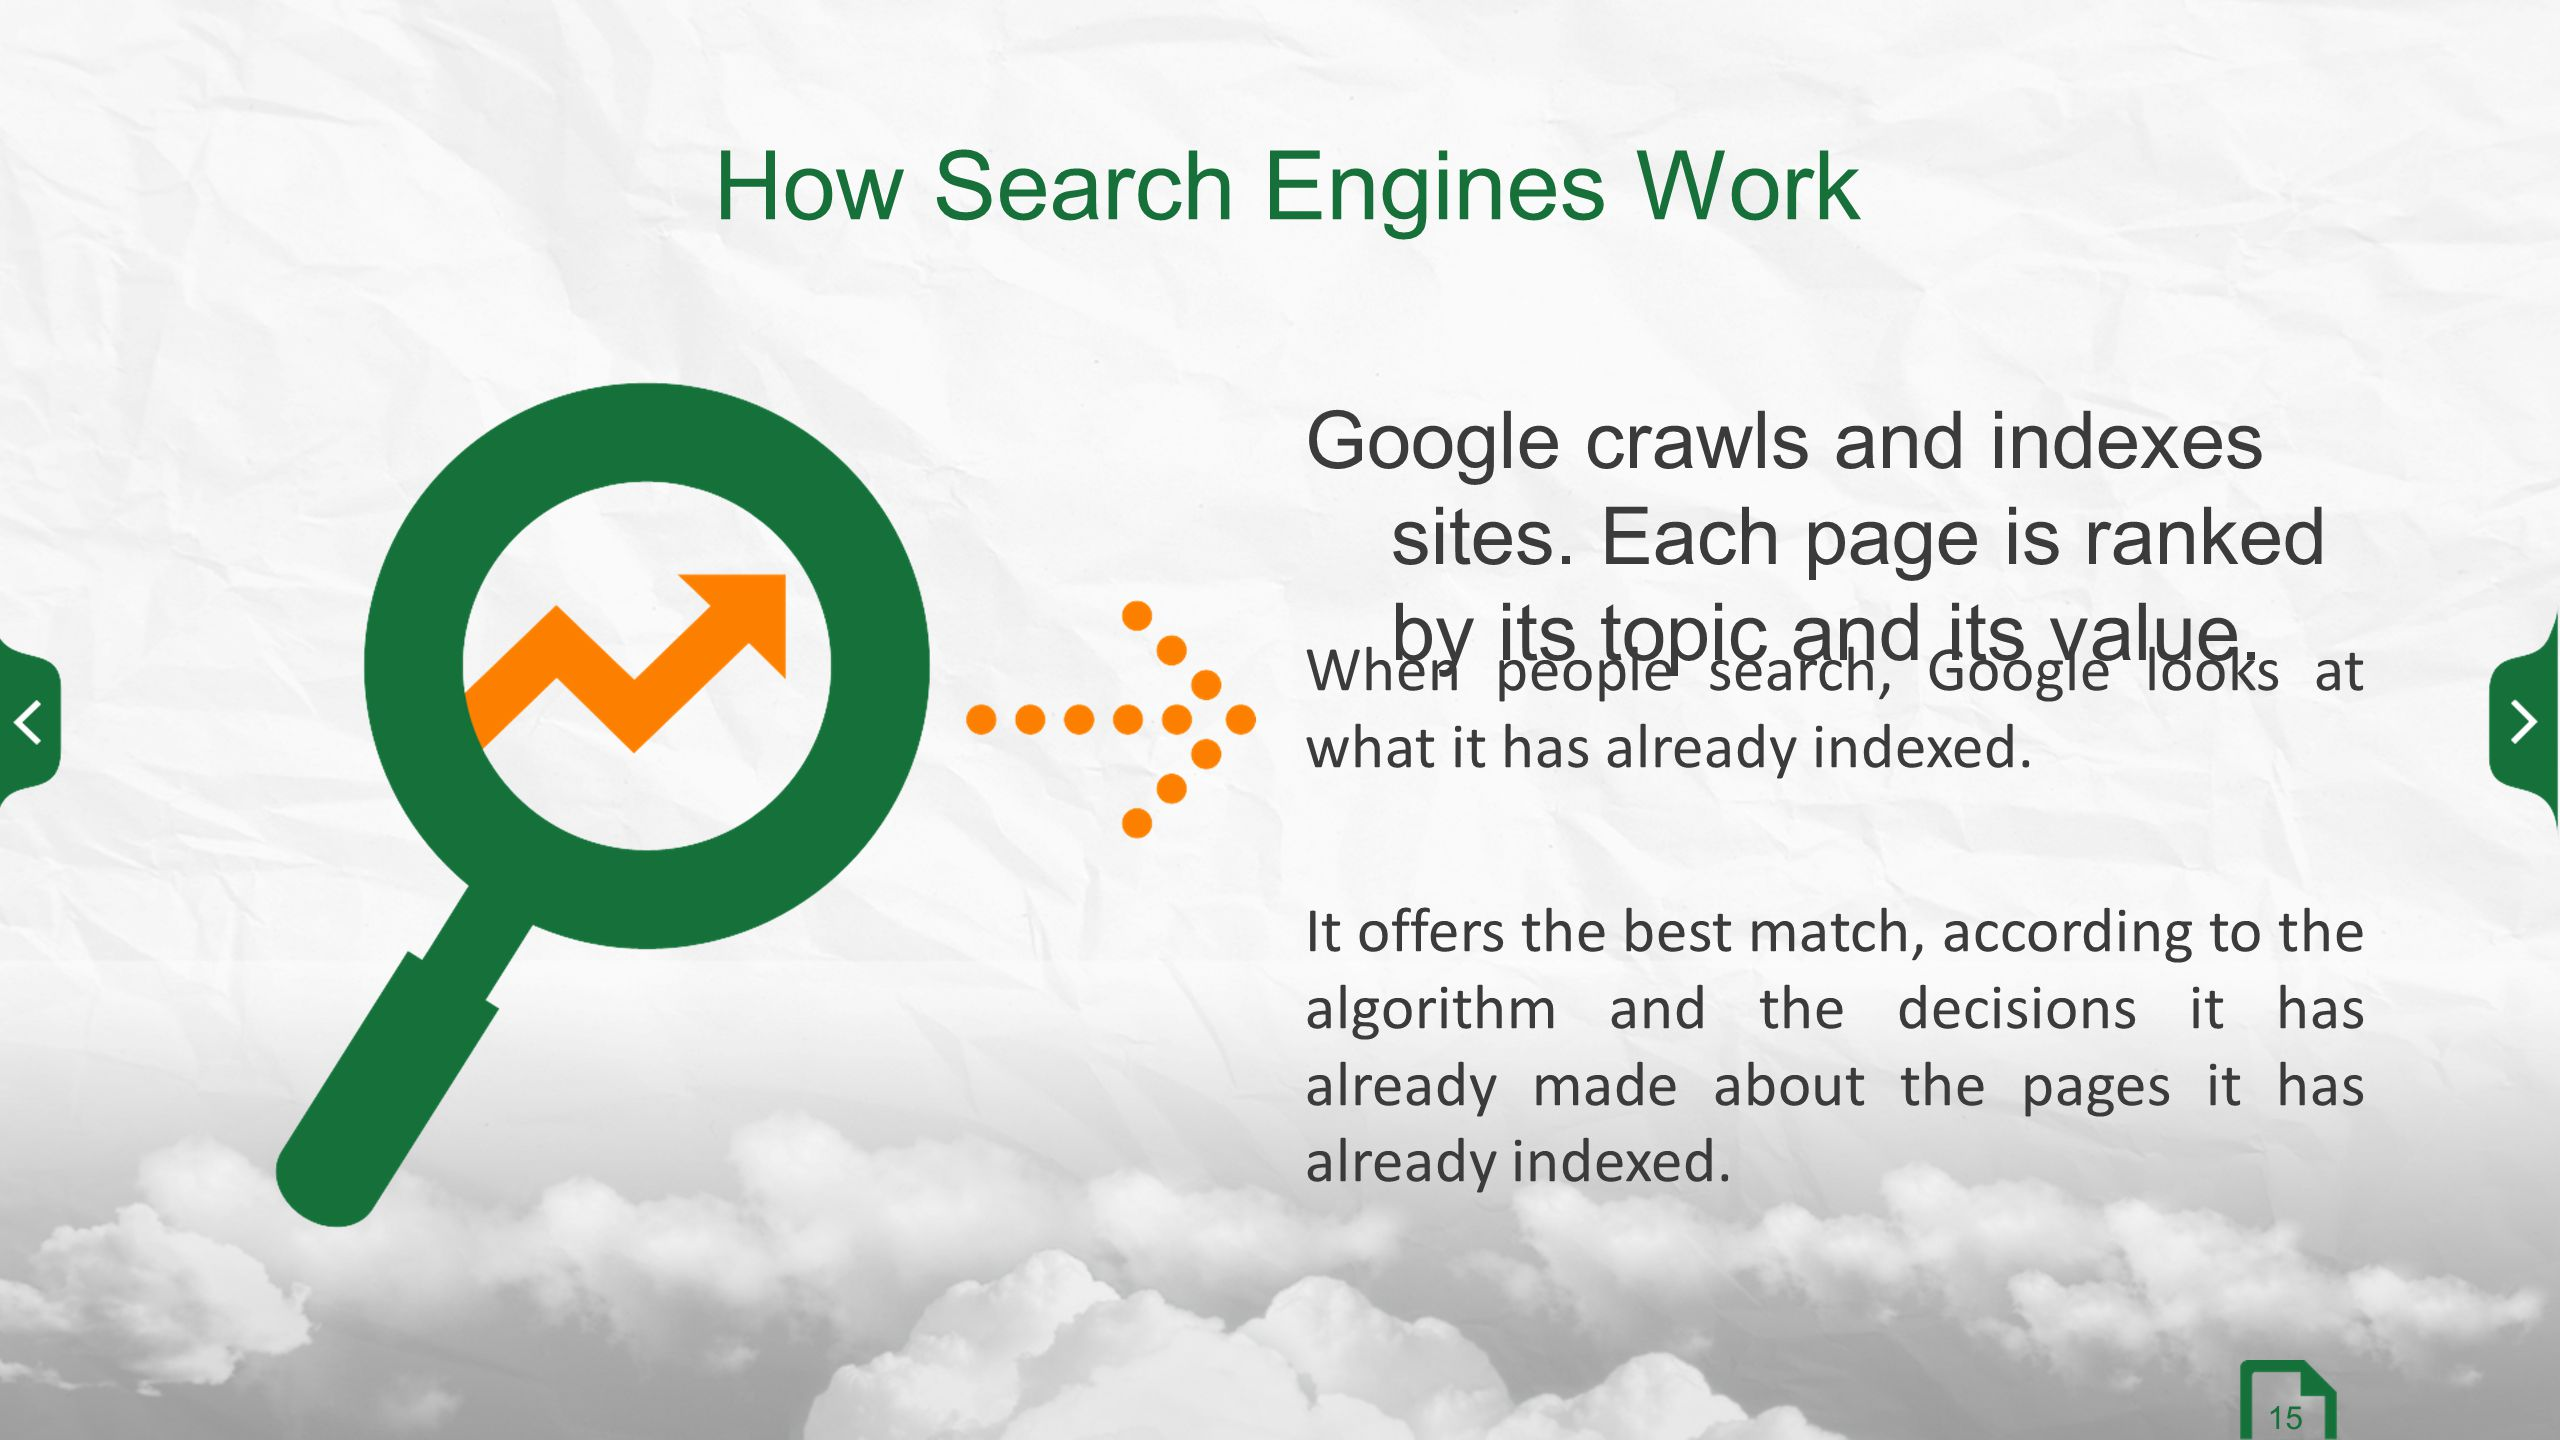 How Search Engines Work When people search, Google looks at what it has already indexed.